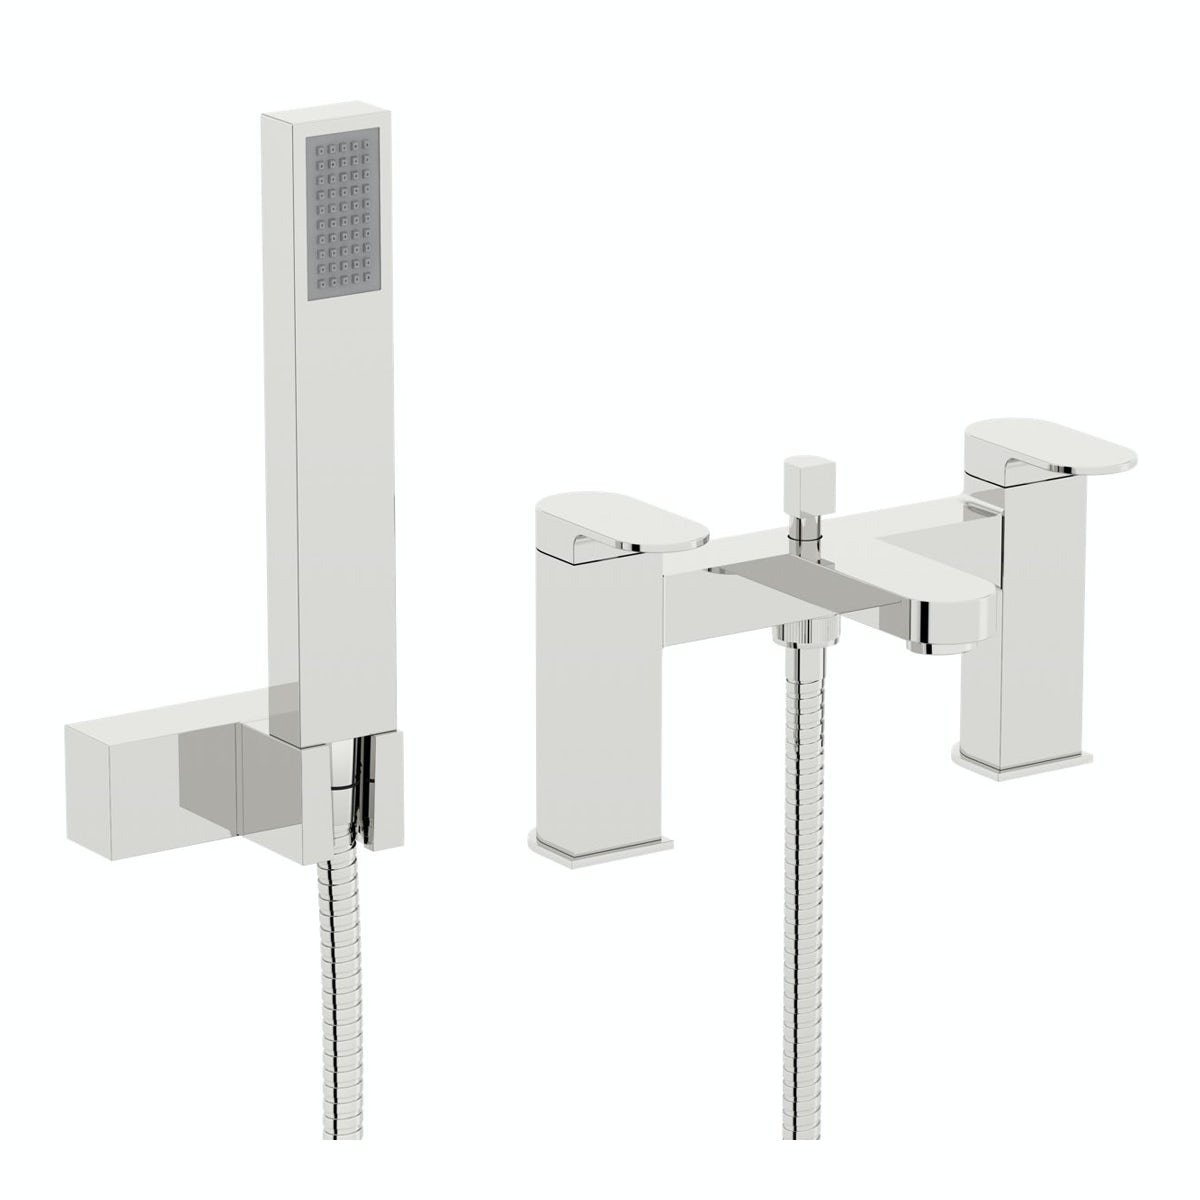 Mode Hardy bath shower mixer tap